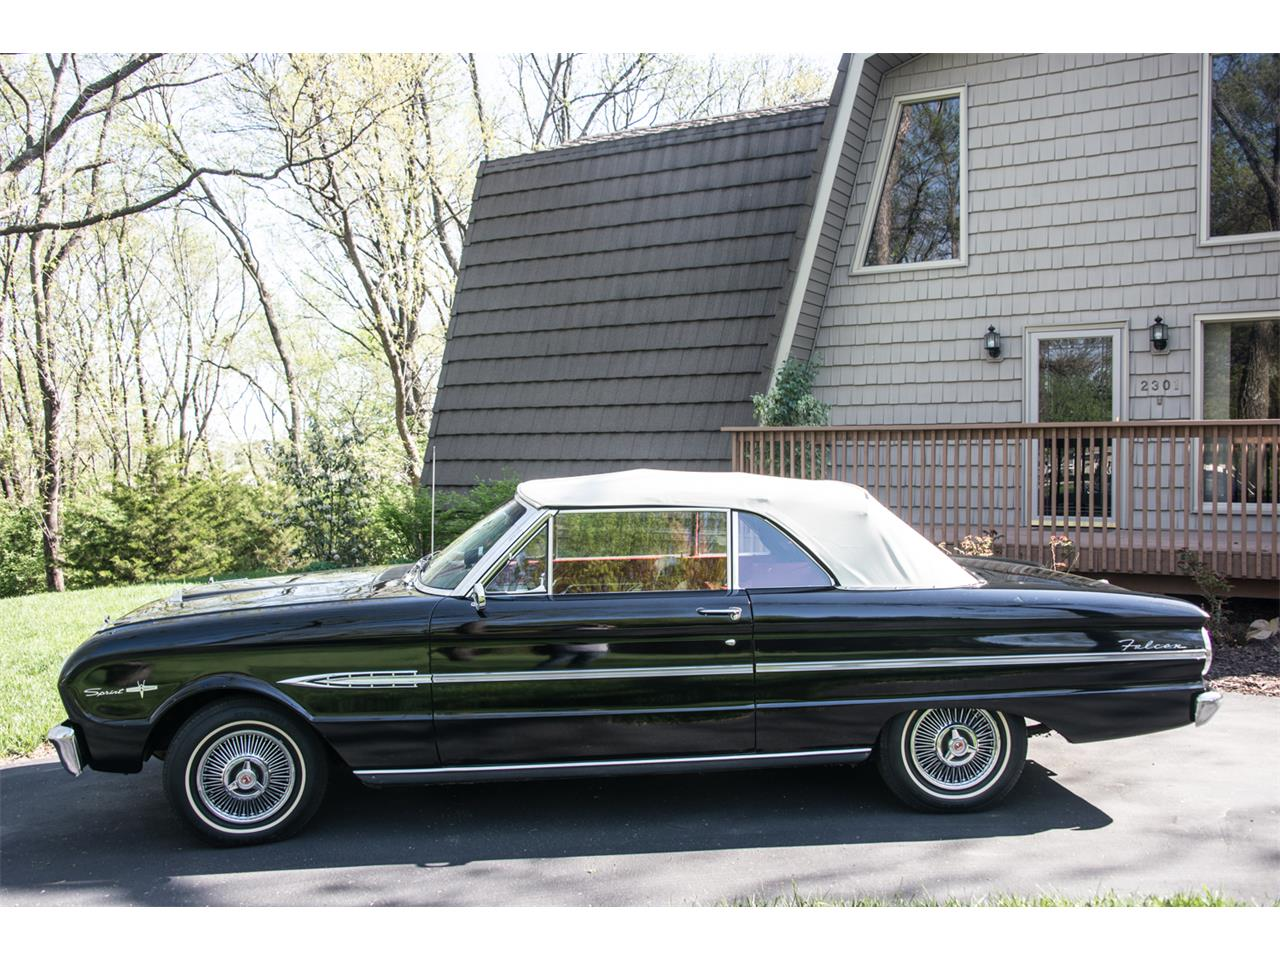 Large picture of 1963 ford falcon 23500 00 offered by a private seller nd9c